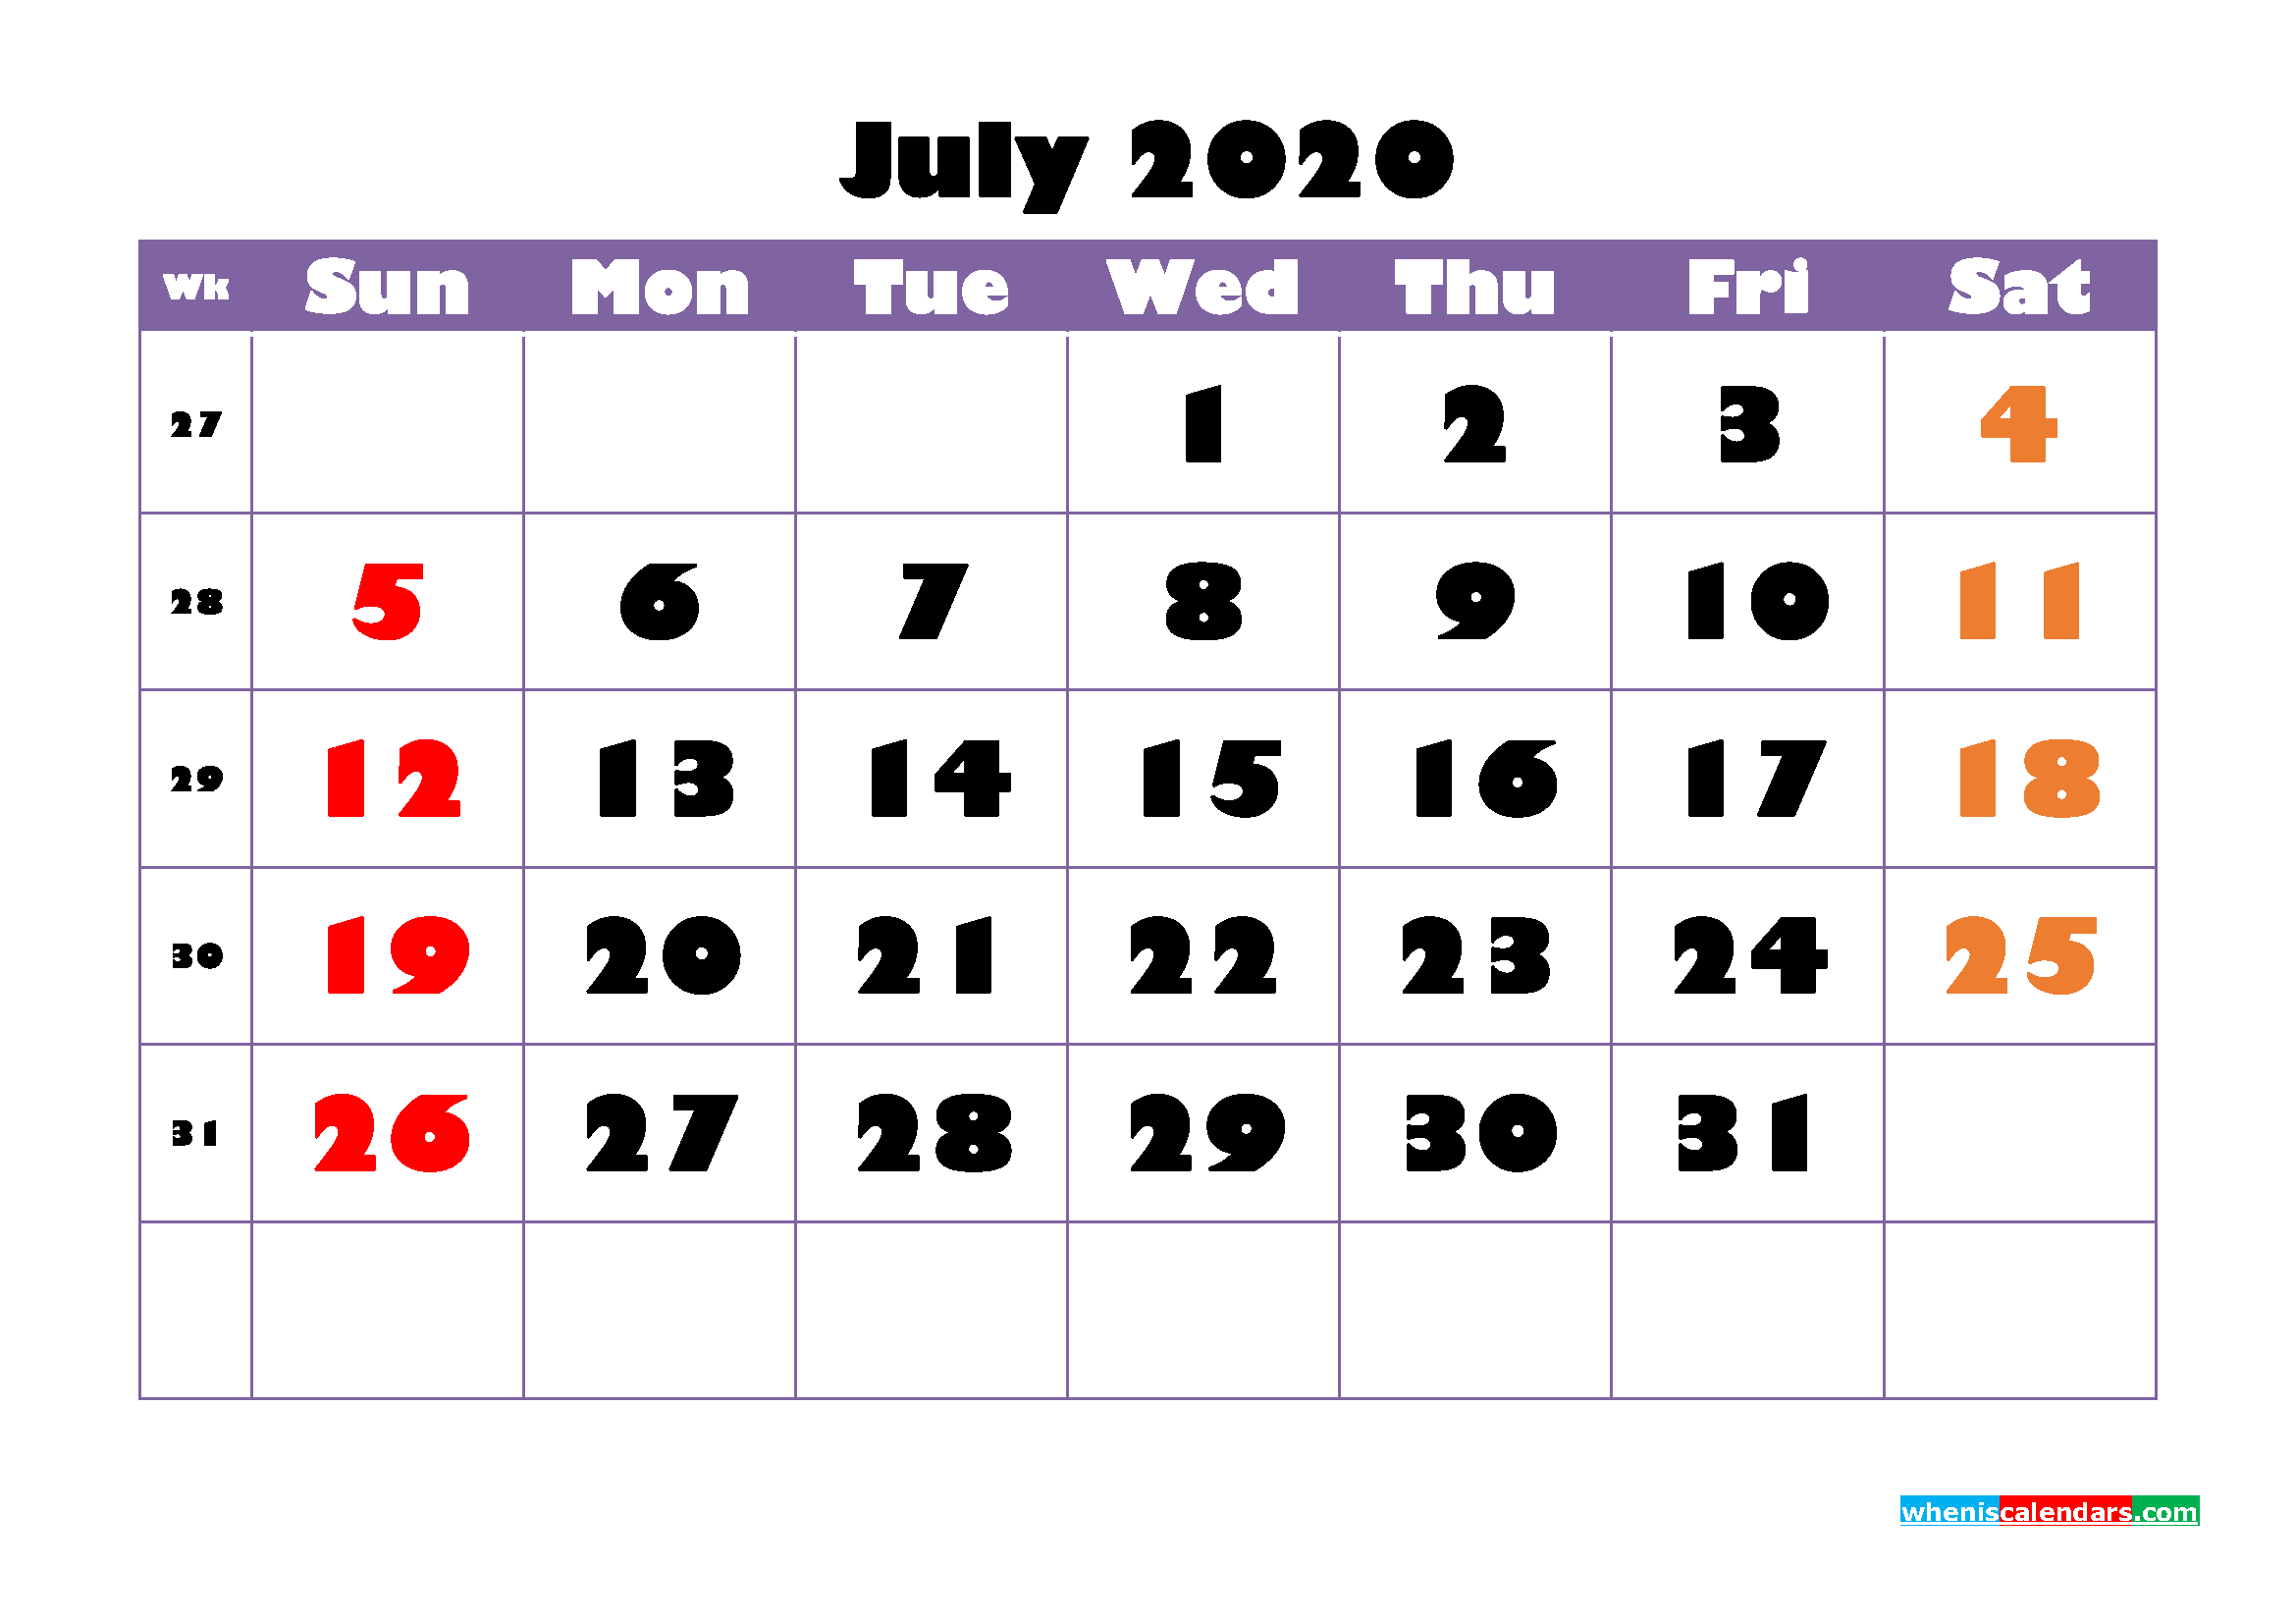 Printable Monthly Calendar 2020 July with Week Numbers